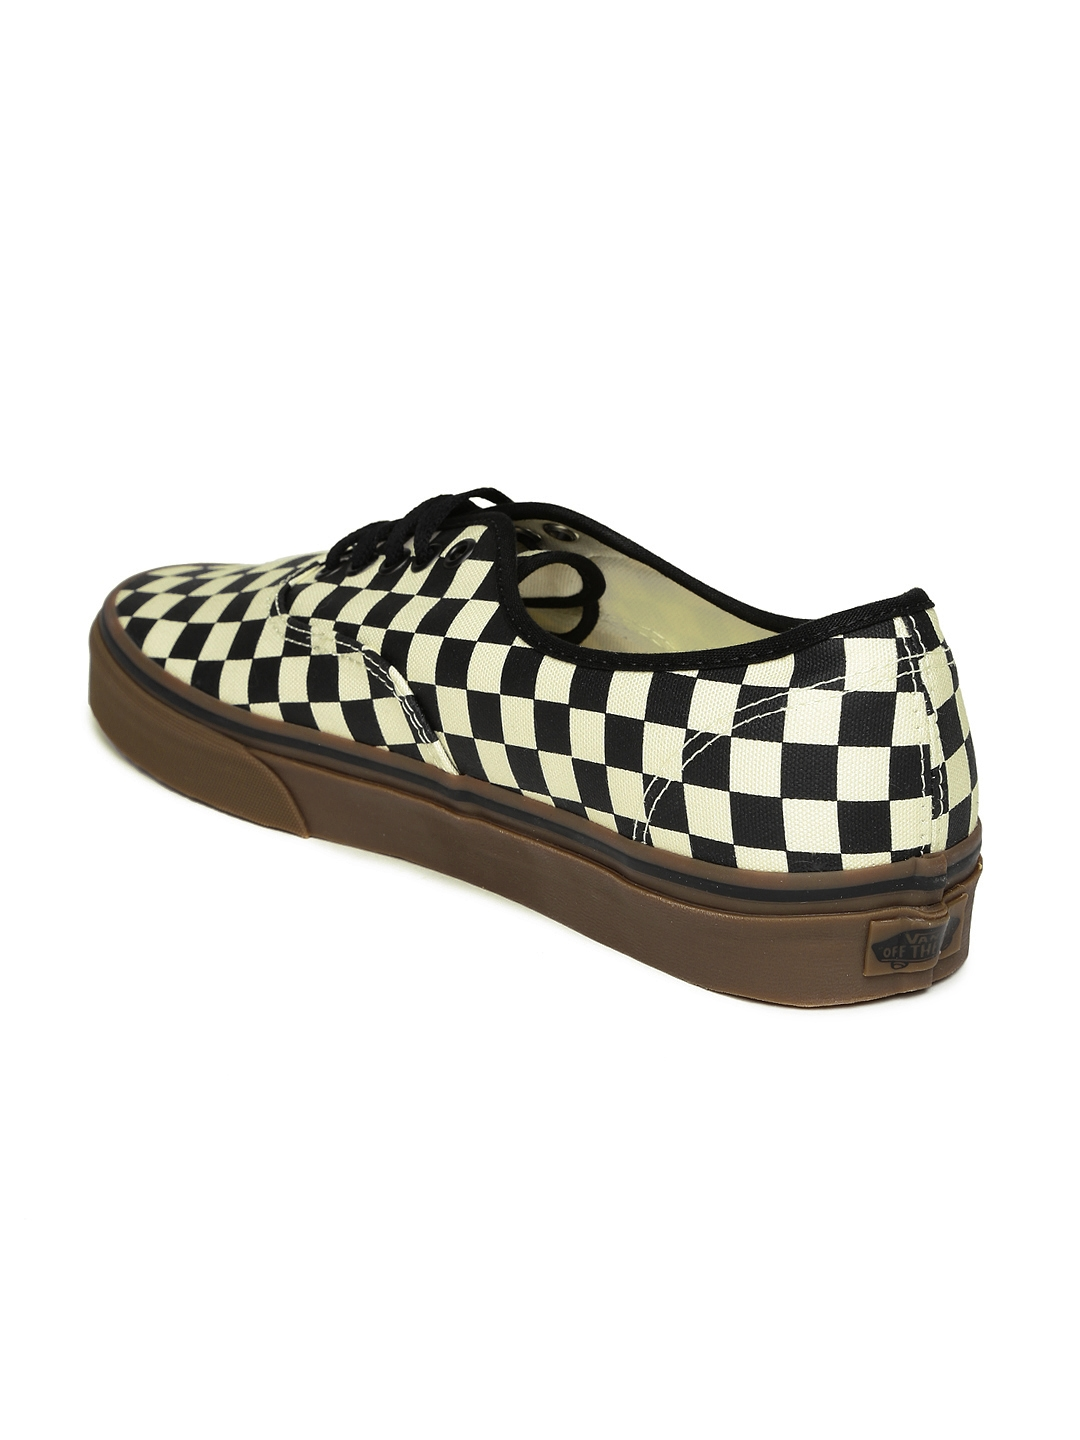 6635f5fcd1 Buy Vans Unisex Black   Off White Checked Authentic Casual Shoes ...